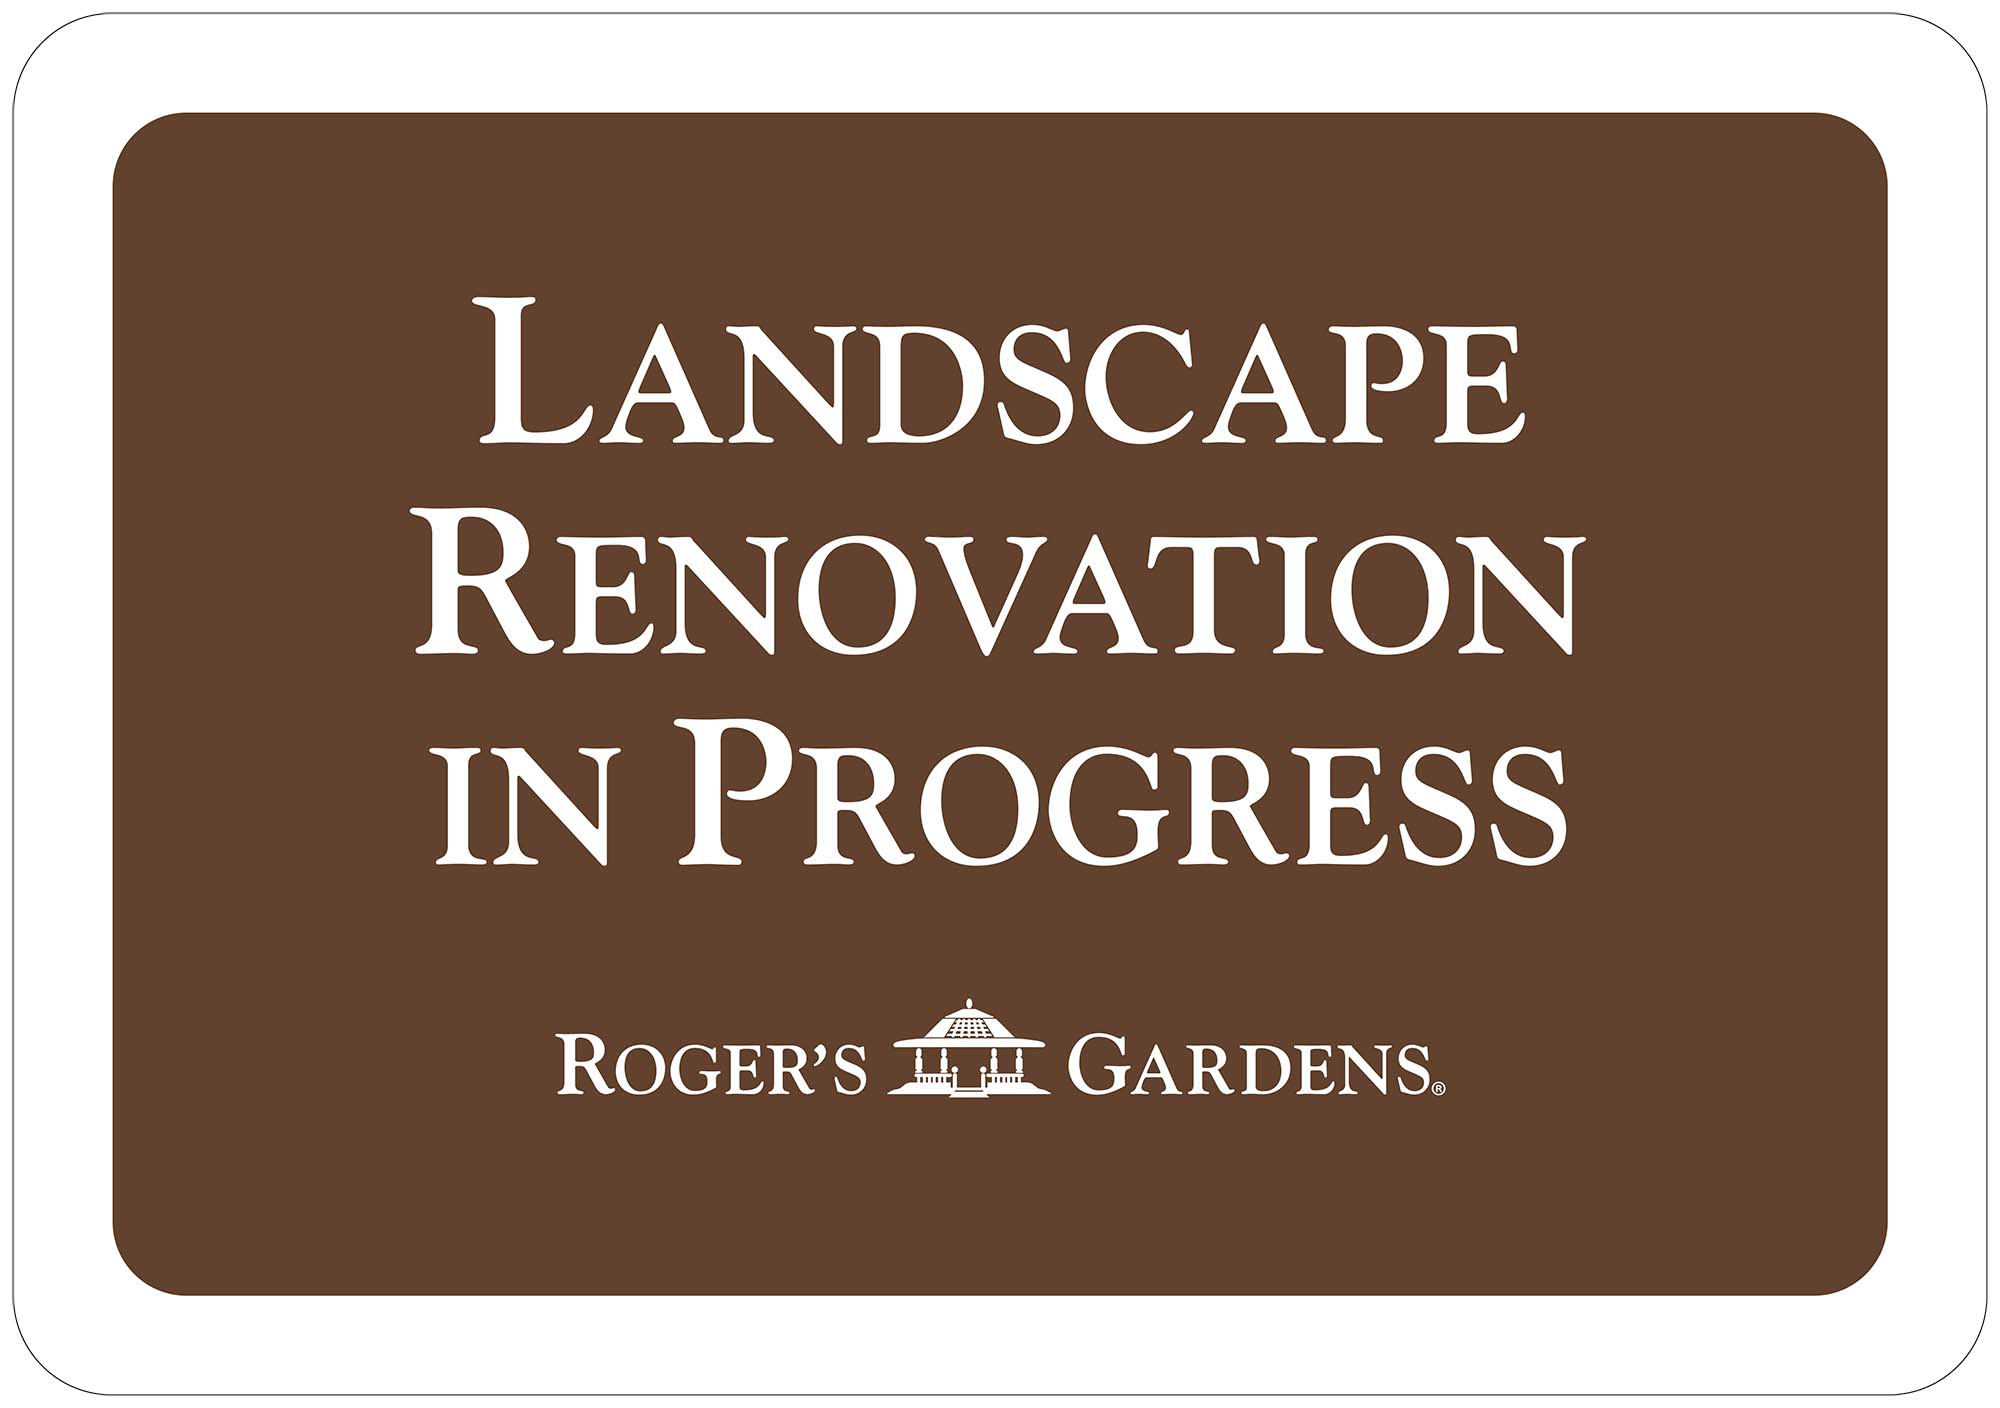 Landscape_Renovation_in